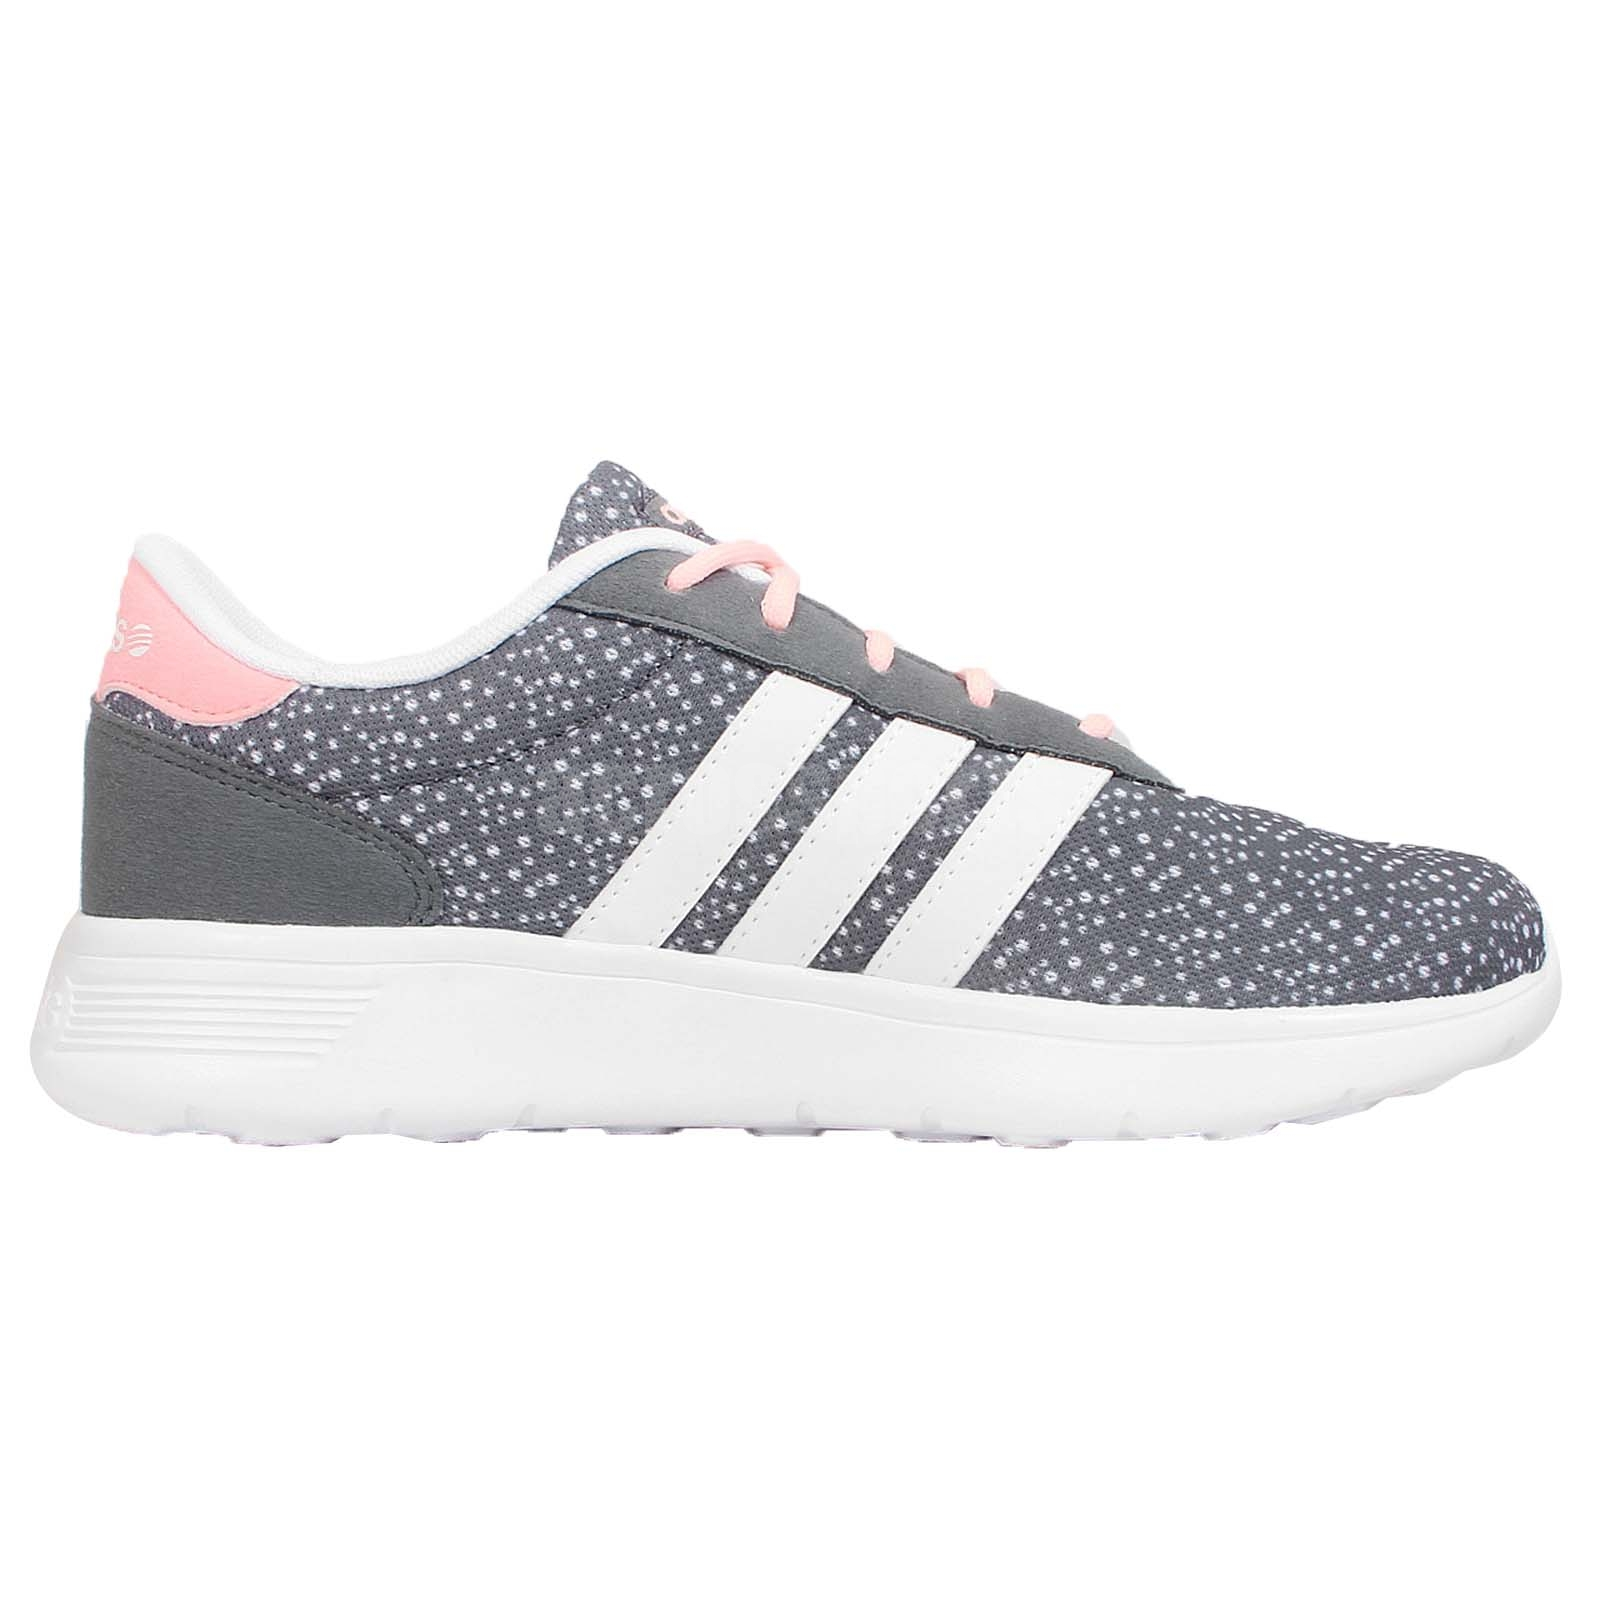 adidas neo lite racer womens grey. Black Bedroom Furniture Sets. Home Design Ideas